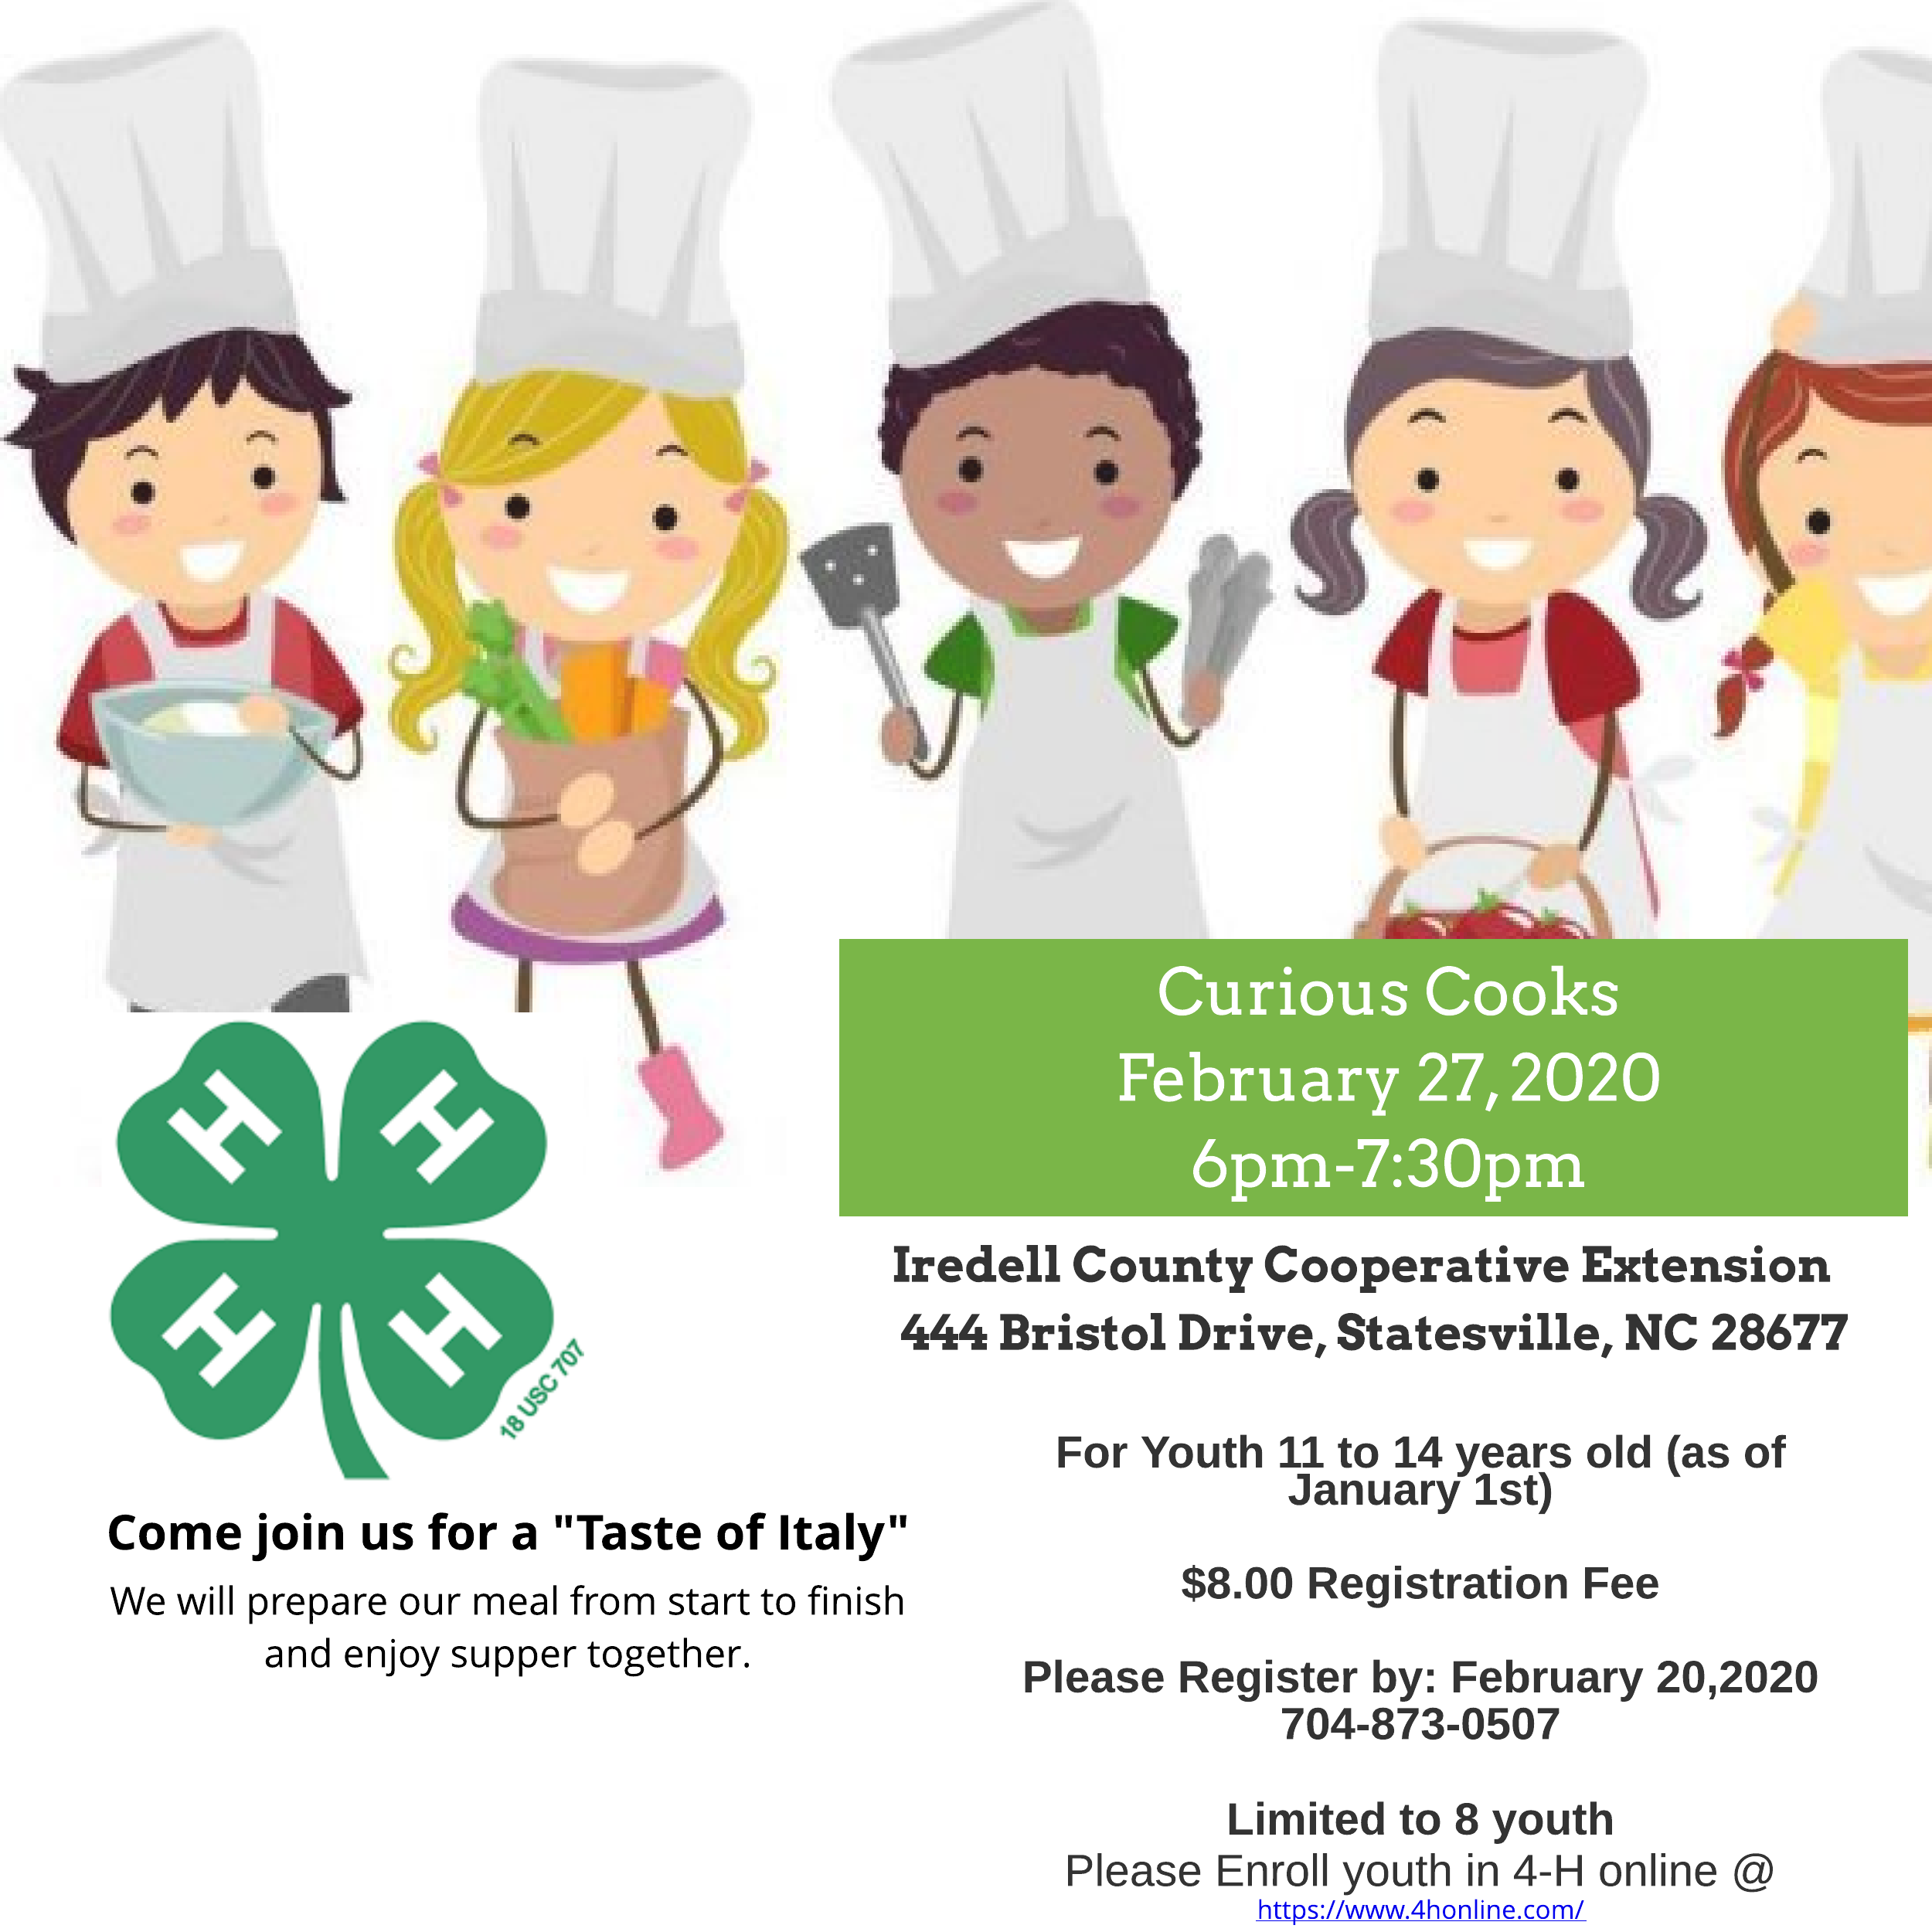 Curious Cooks flyer image